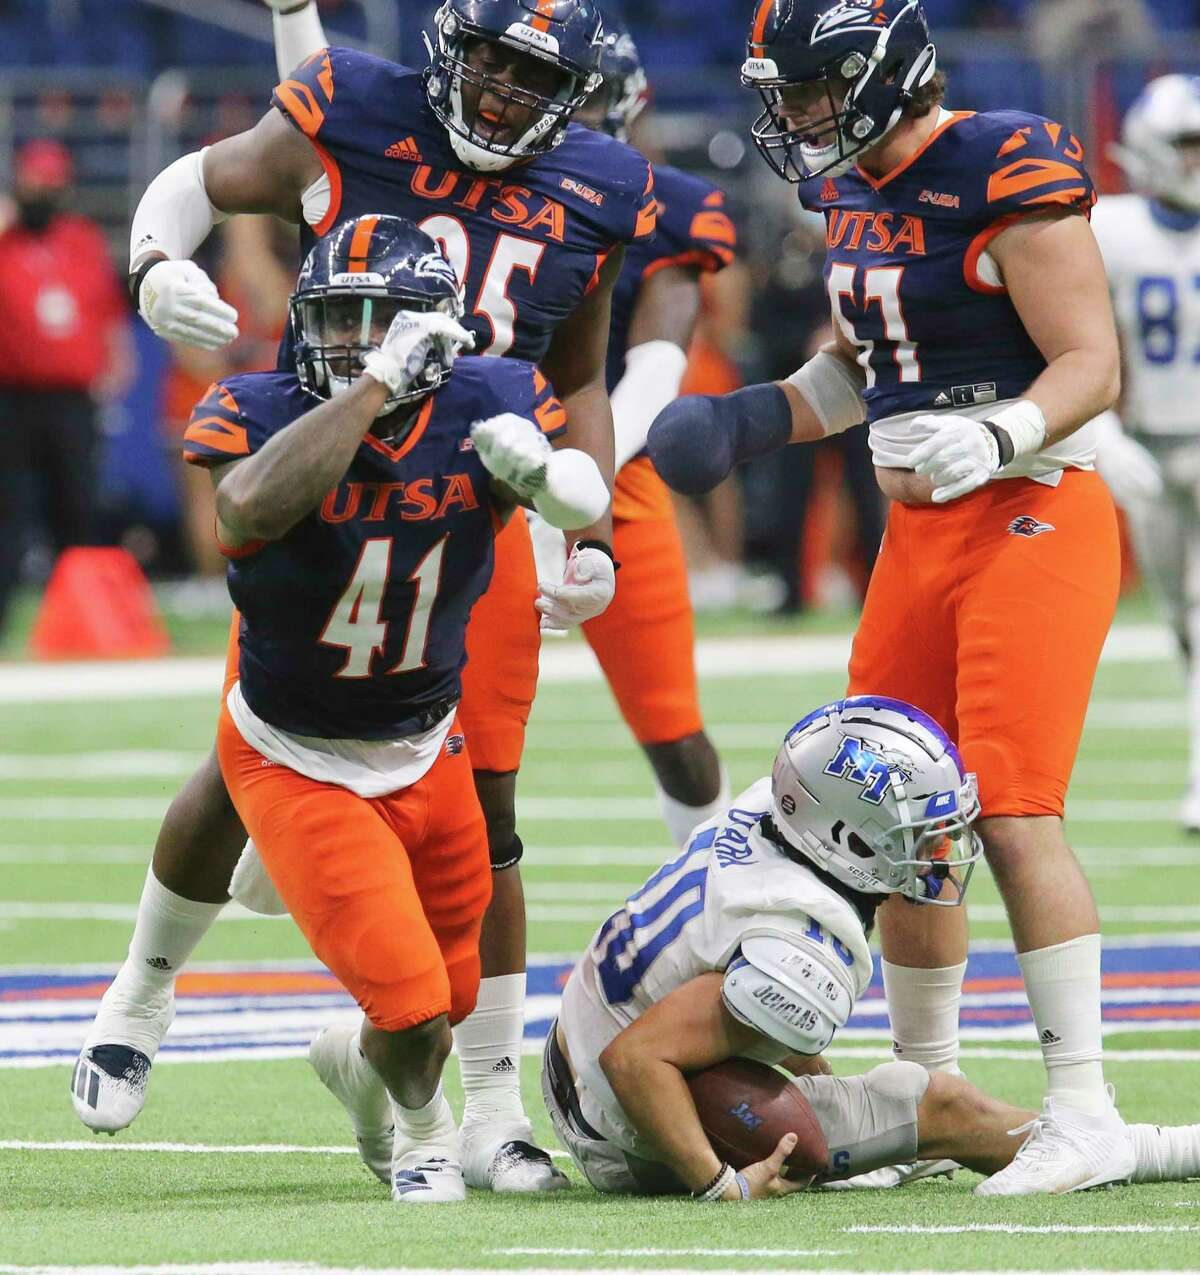 UTSA's De'Marco Guidry (41) reacts after his sack against Middle Tennessee quarterback Asher O'Hara (10) during their game at the Alamodome on Friday, Sept. 25, 2020.